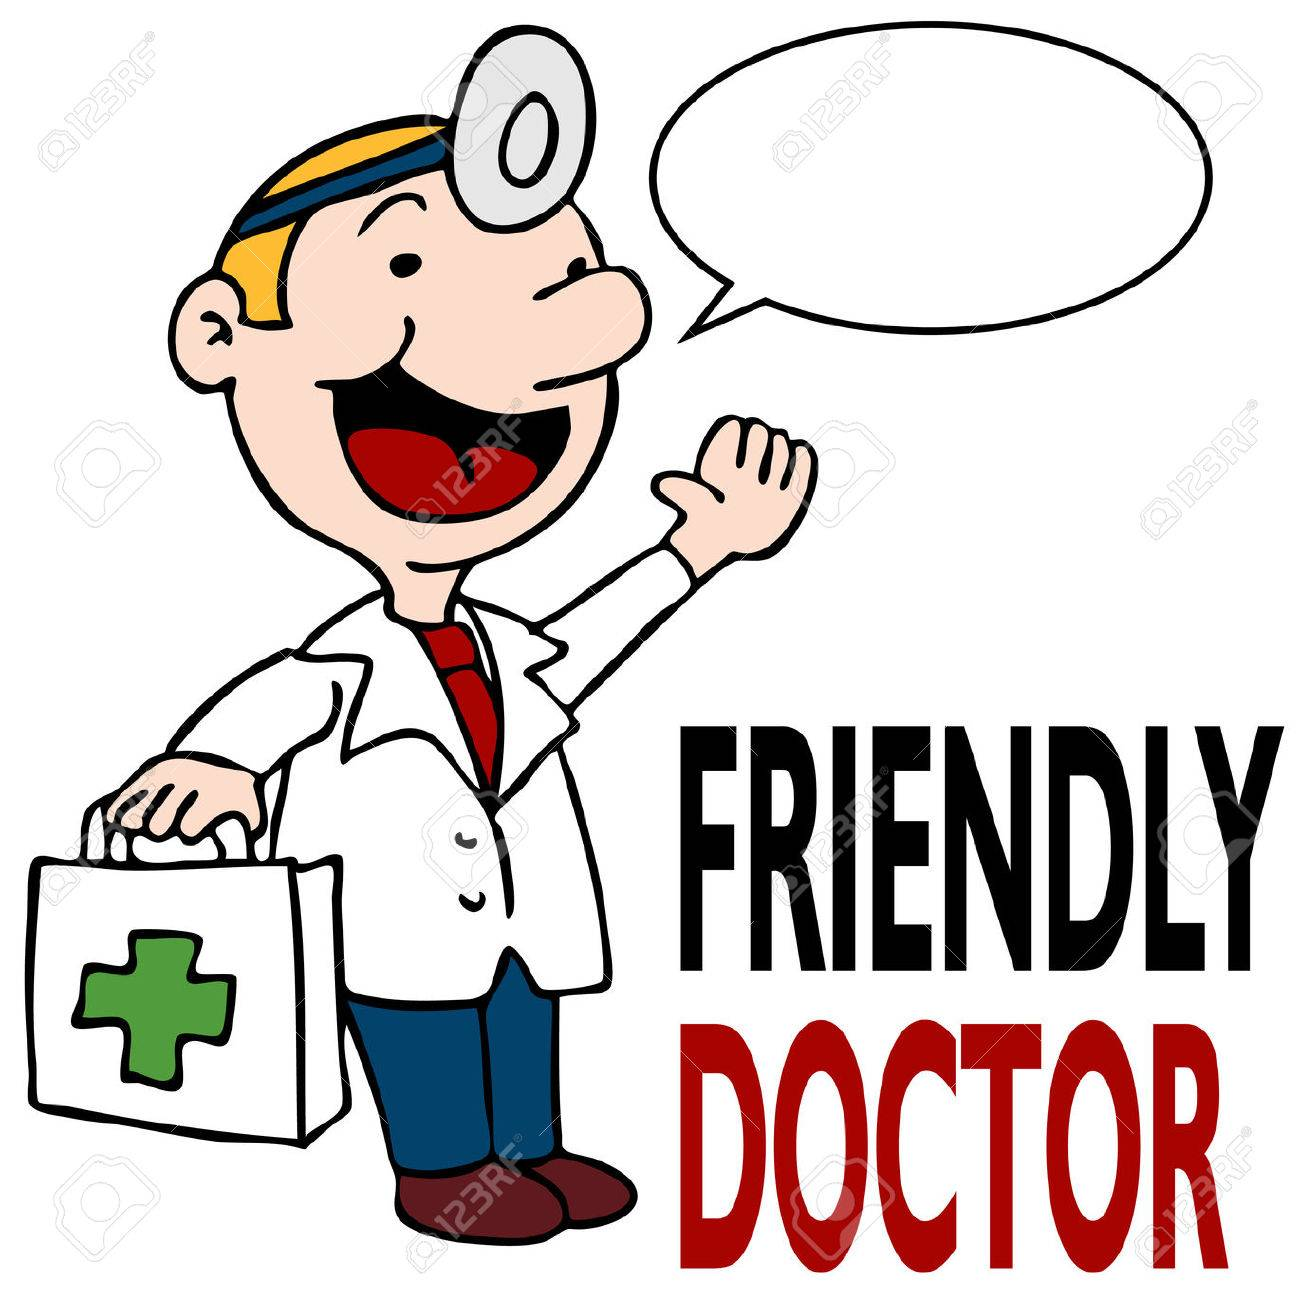 an image of a friendly doctor holding medical kit royalty free